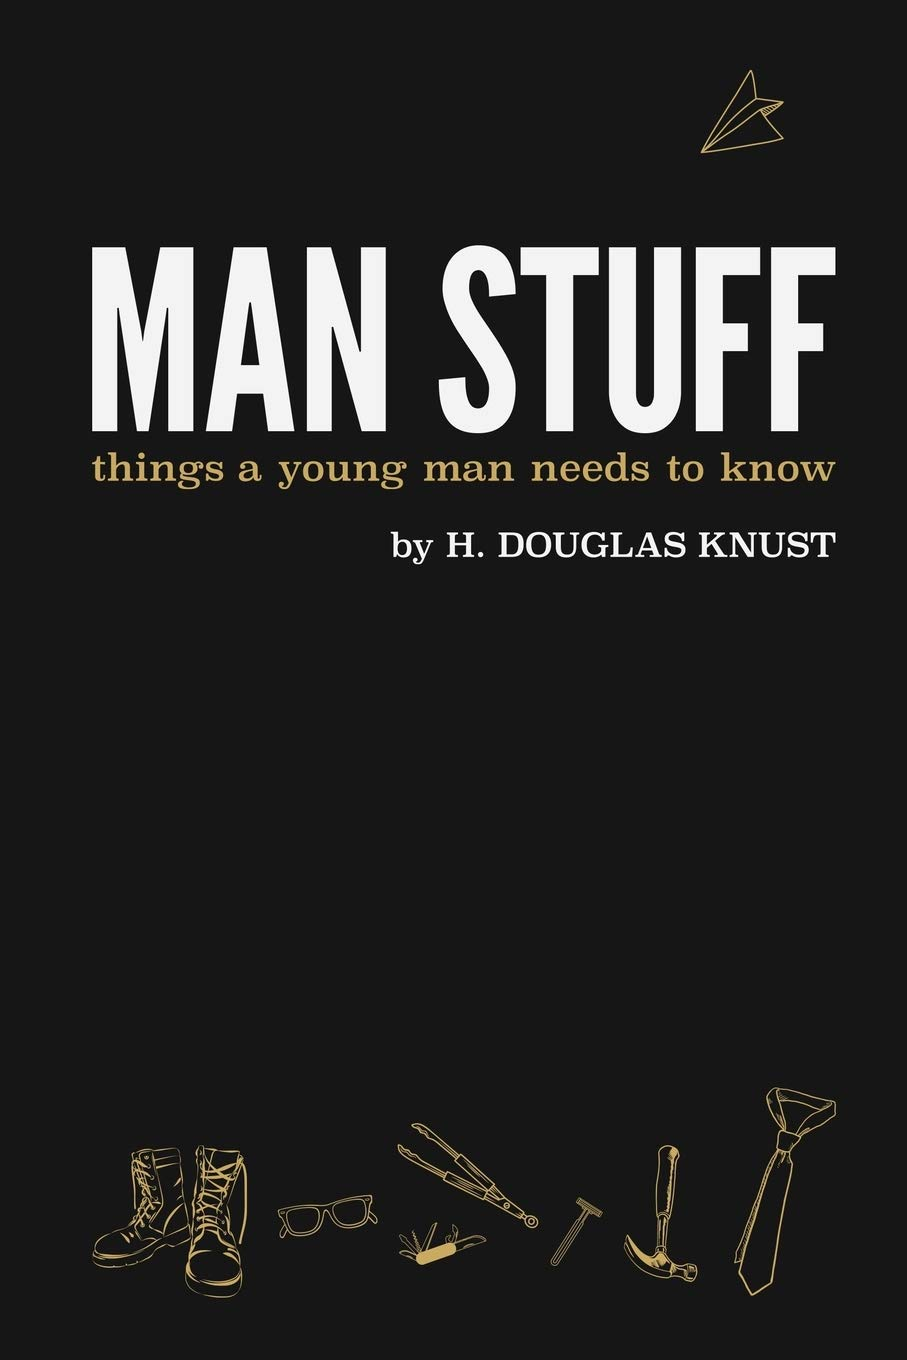 Man Stuff: Things a Young Man Needs to Know